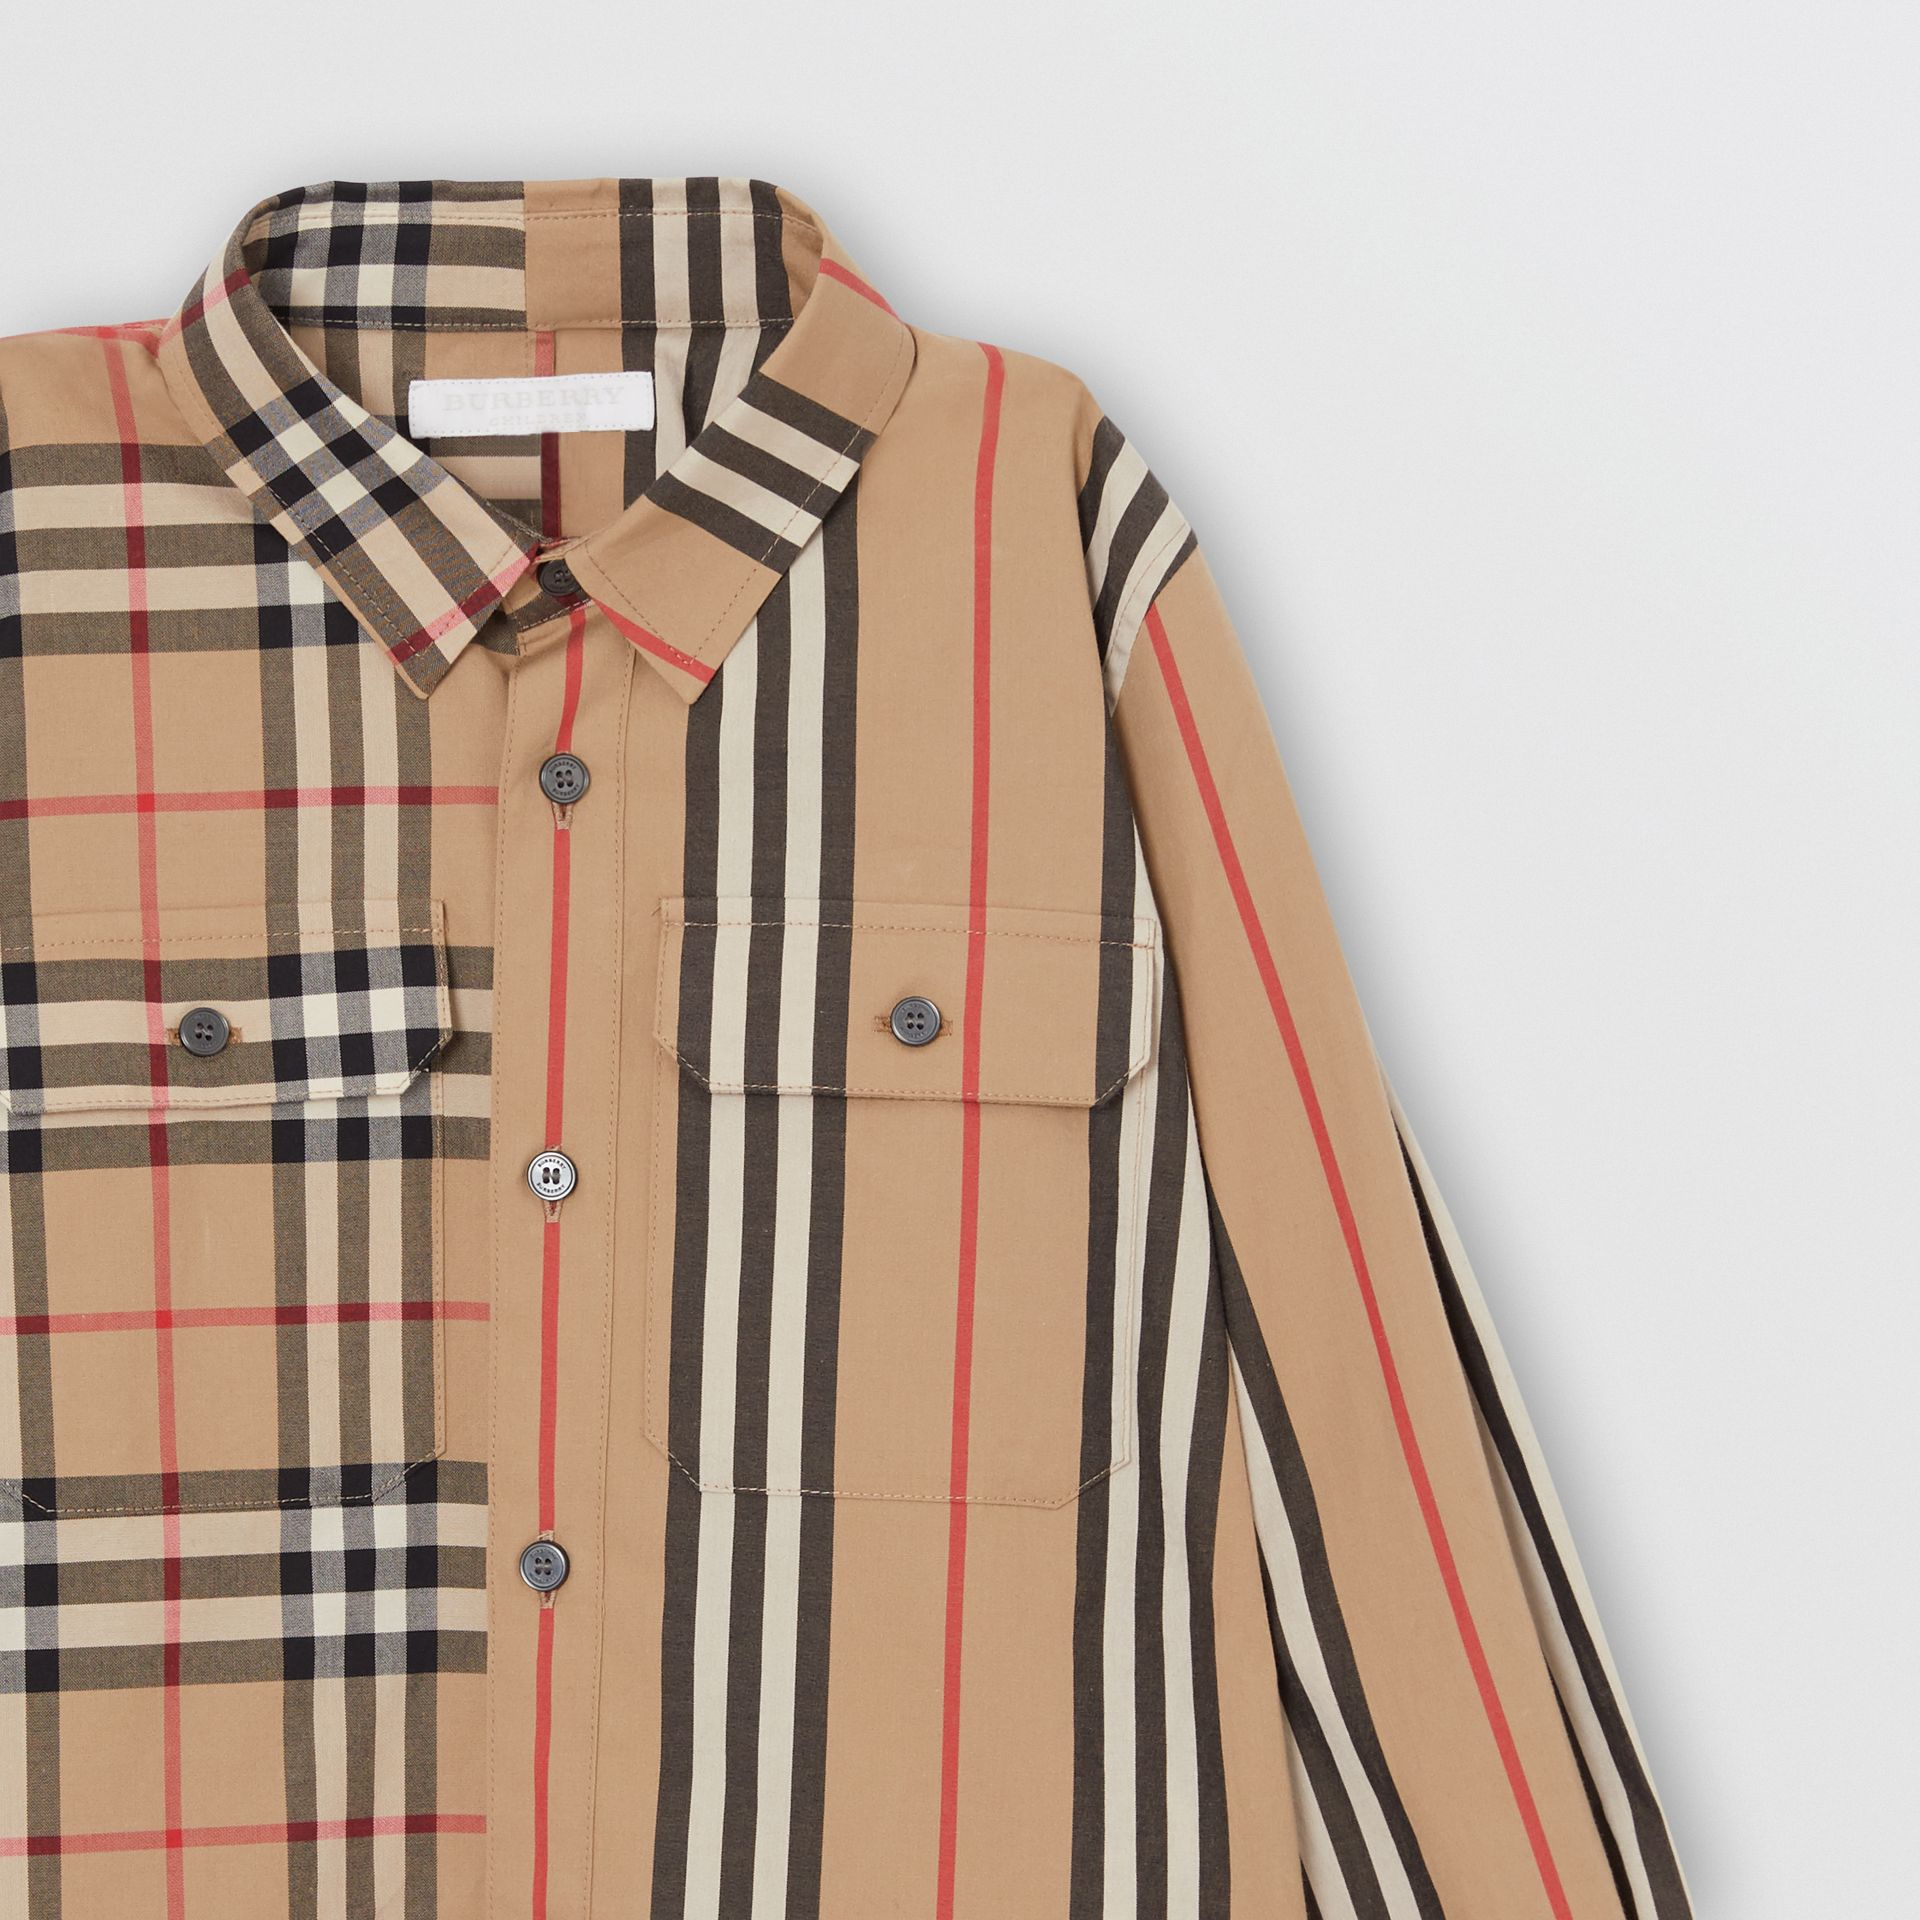 Panelled Vintage Check and Icon Stripe Cotton Shirt in Archive Beige | Burberry United Kingdom - gallery image 4